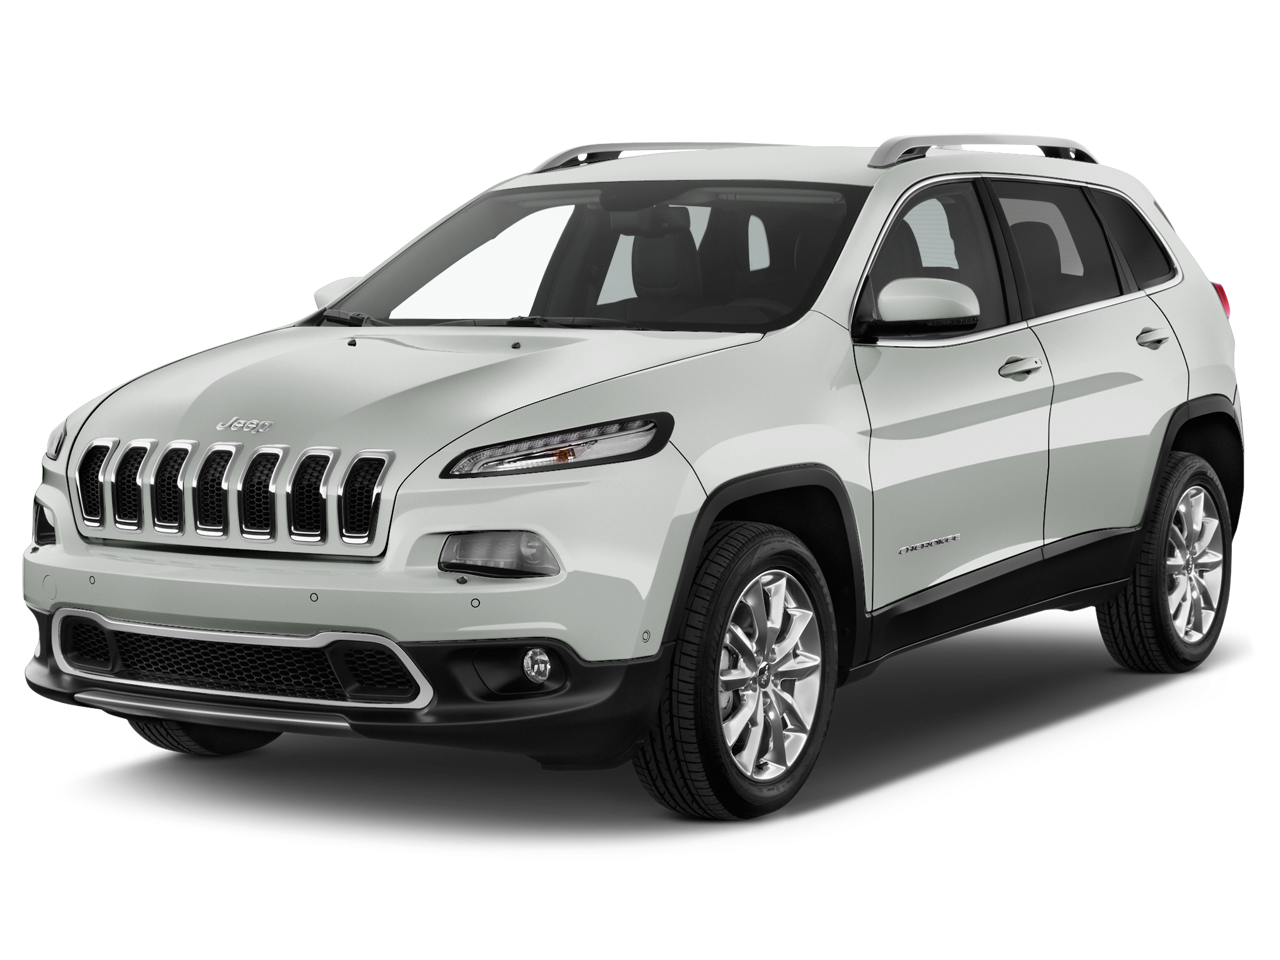 used one owner 2017 jeep cherokee limited 4x4 in skokie il sherman dodge chrysler jeep ram. Black Bedroom Furniture Sets. Home Design Ideas